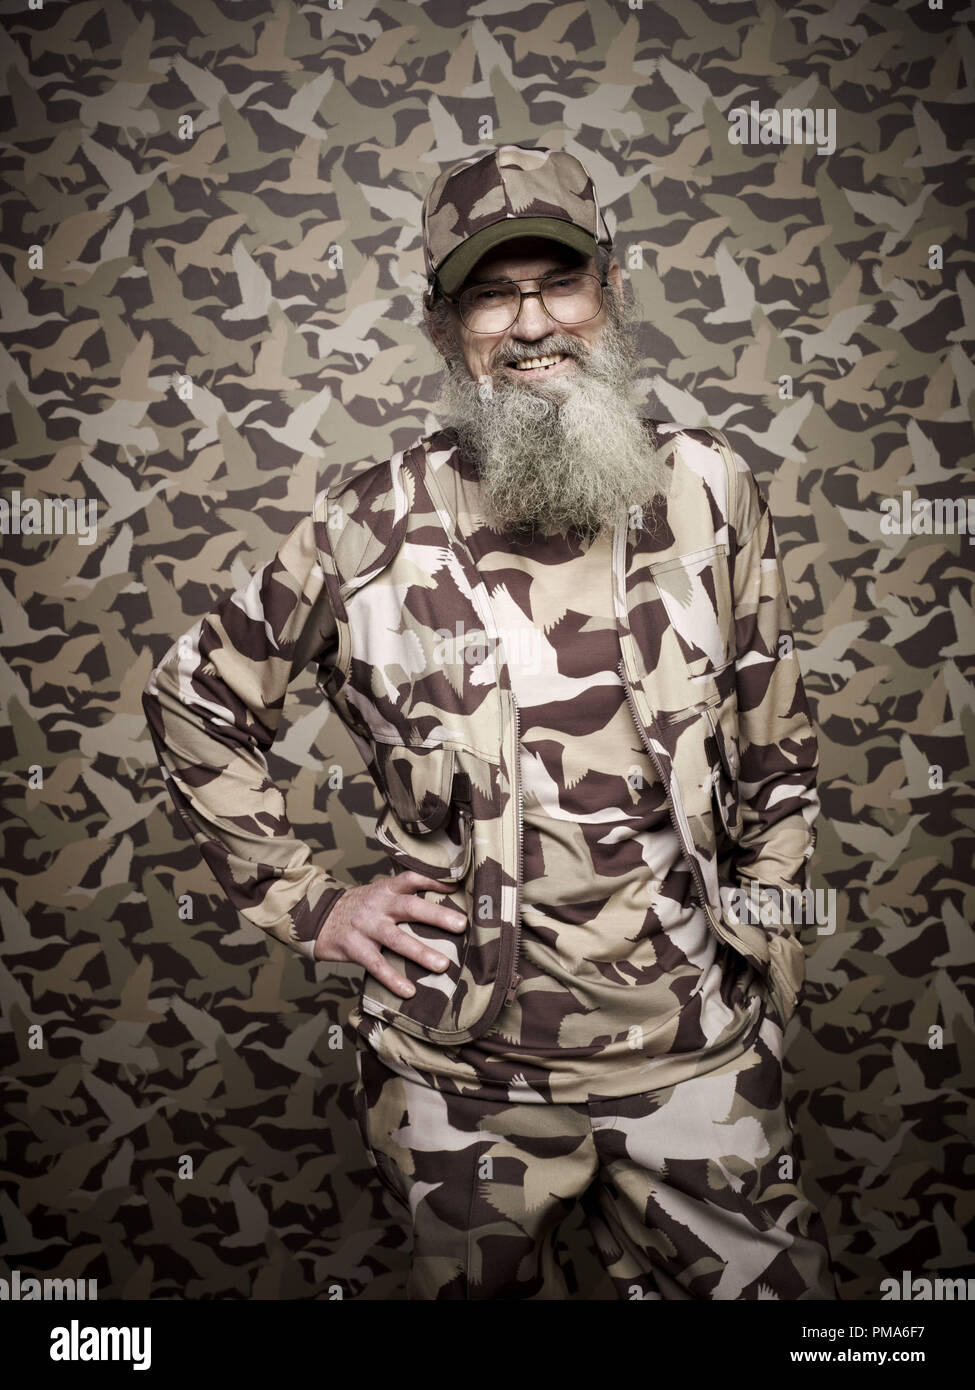 Si Robertson of the A&E series DUCK DYNASTY - Stock Image